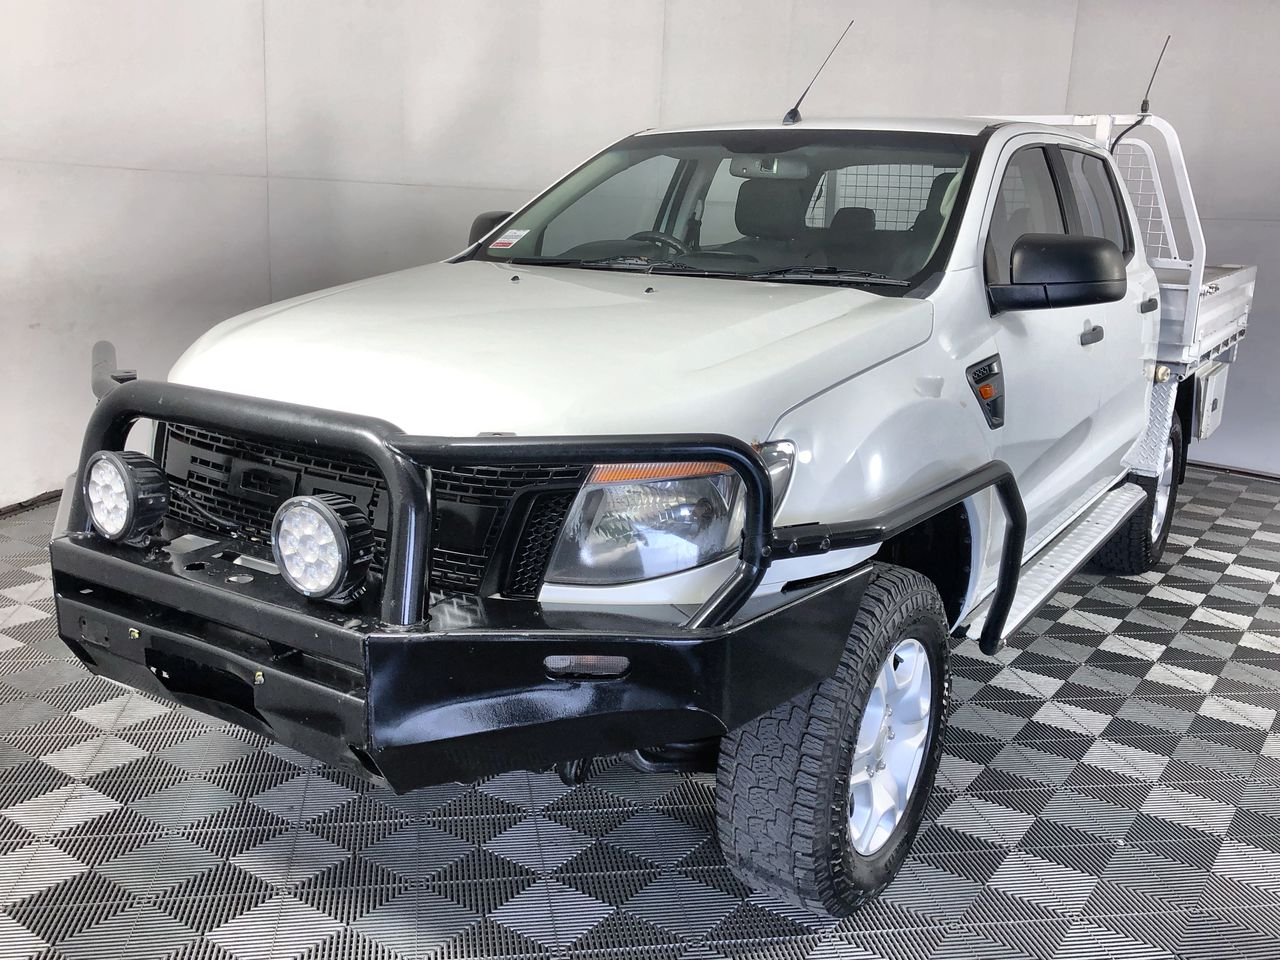 2012 (2013) Ford Ranger XL 4X4 PX Turbo Diesel Auto Dual Cab Chassis